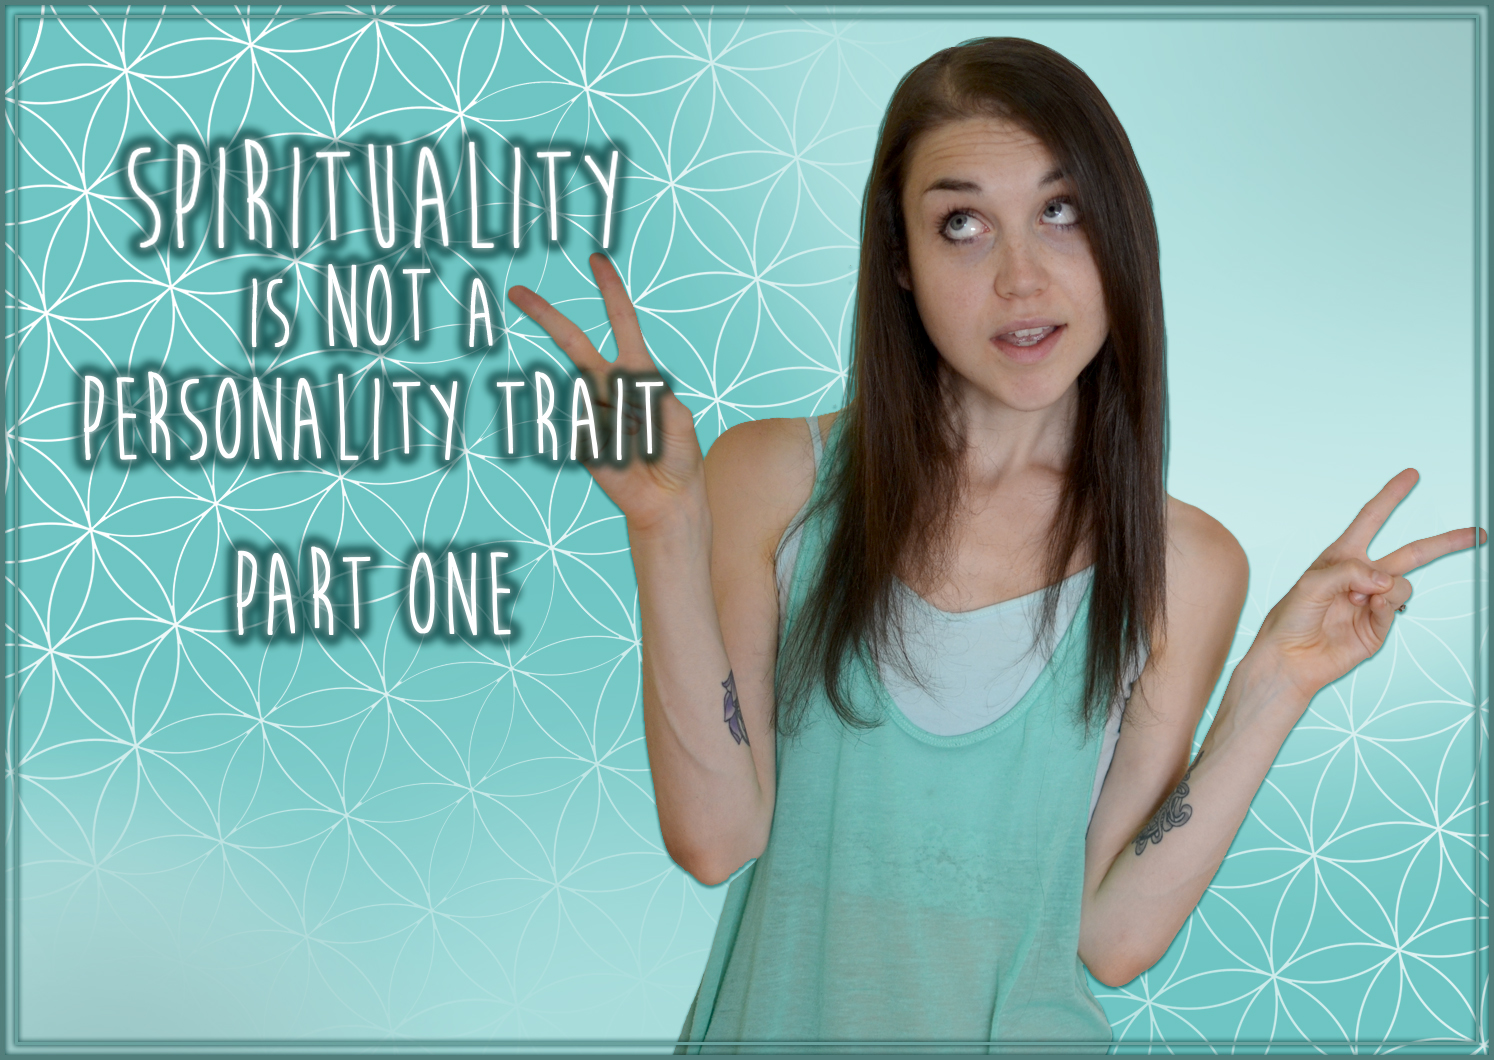 Spirituality Is Not A Personality Trait: Part One